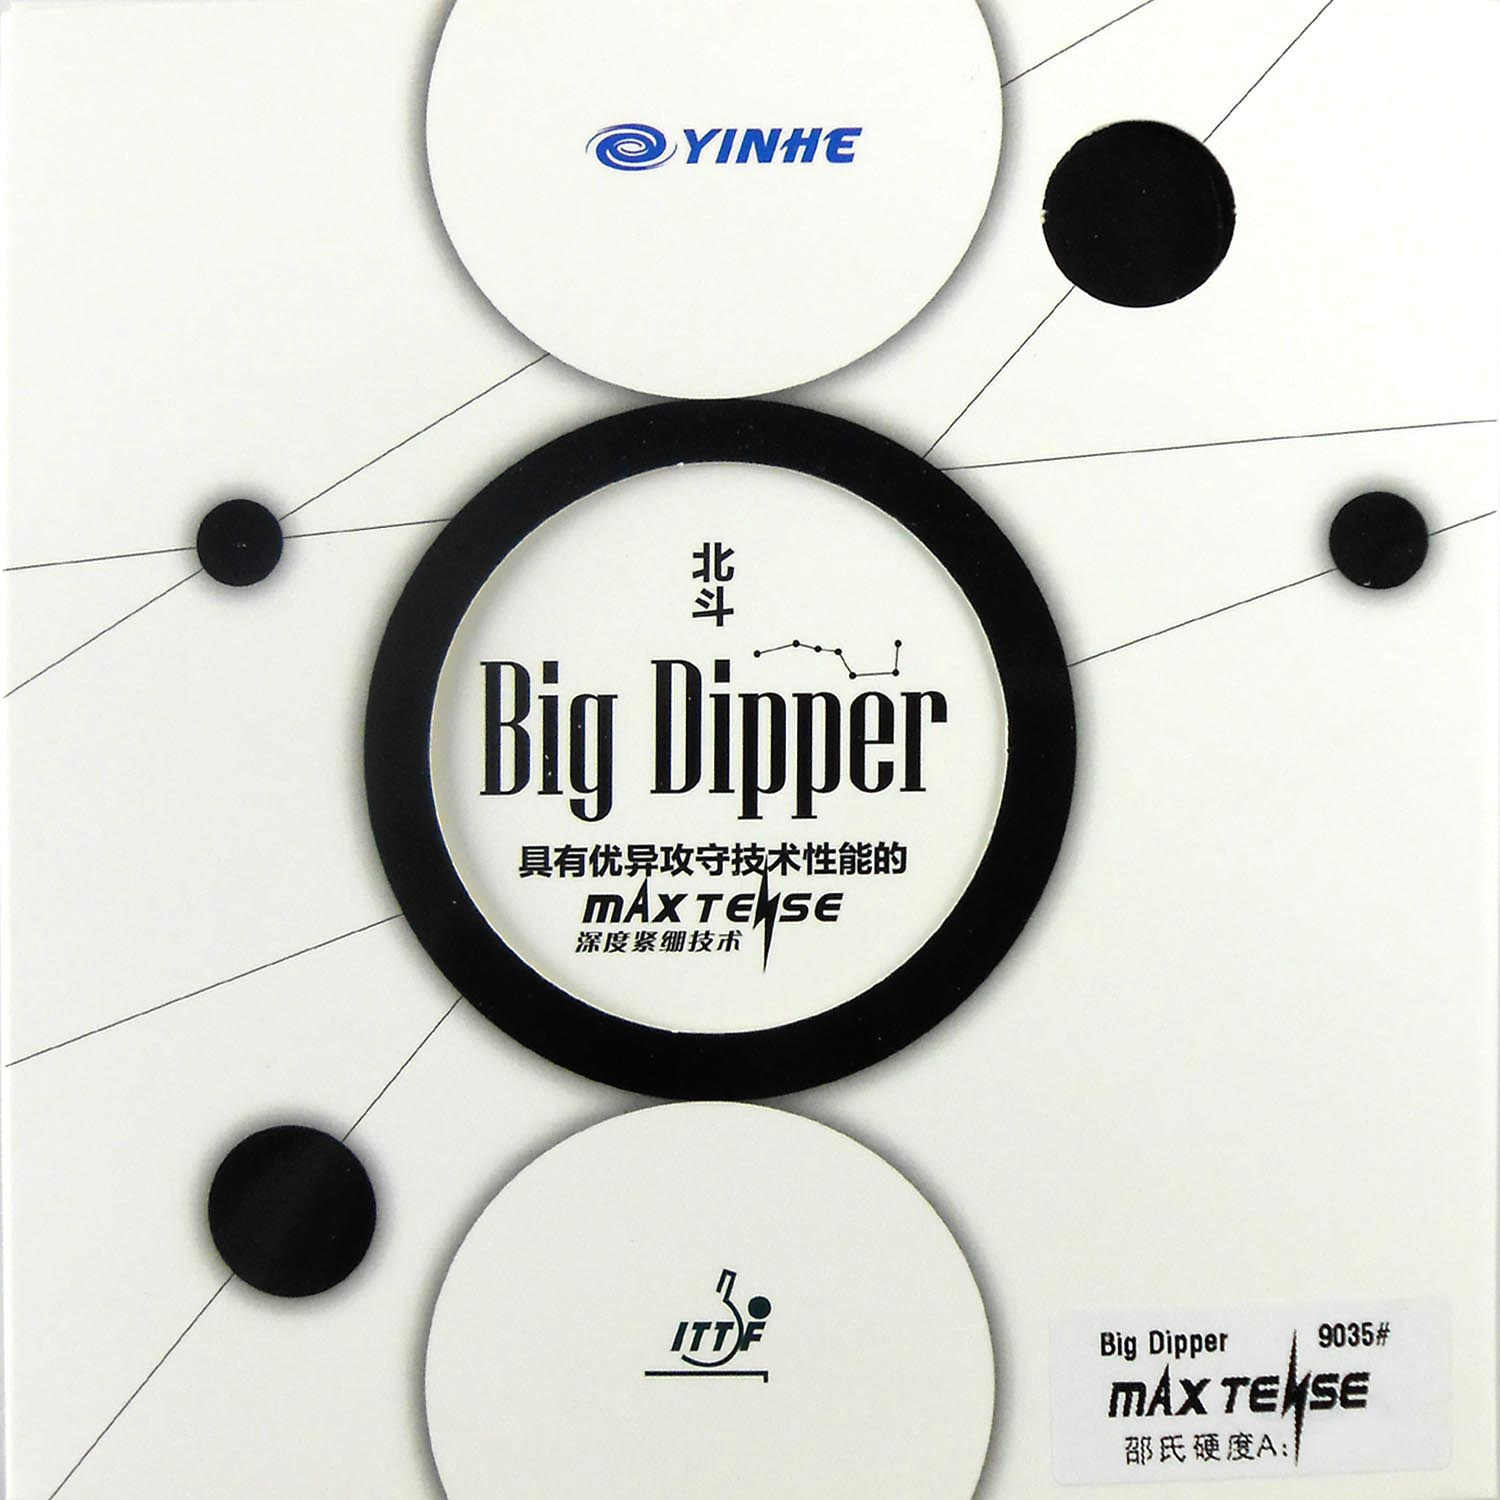 Galaxy Milky Way Yinhe Big Dipper Factory Tuned Max Tense Tacky Pips-in Table Tennis PingPong Rubber With Sponge